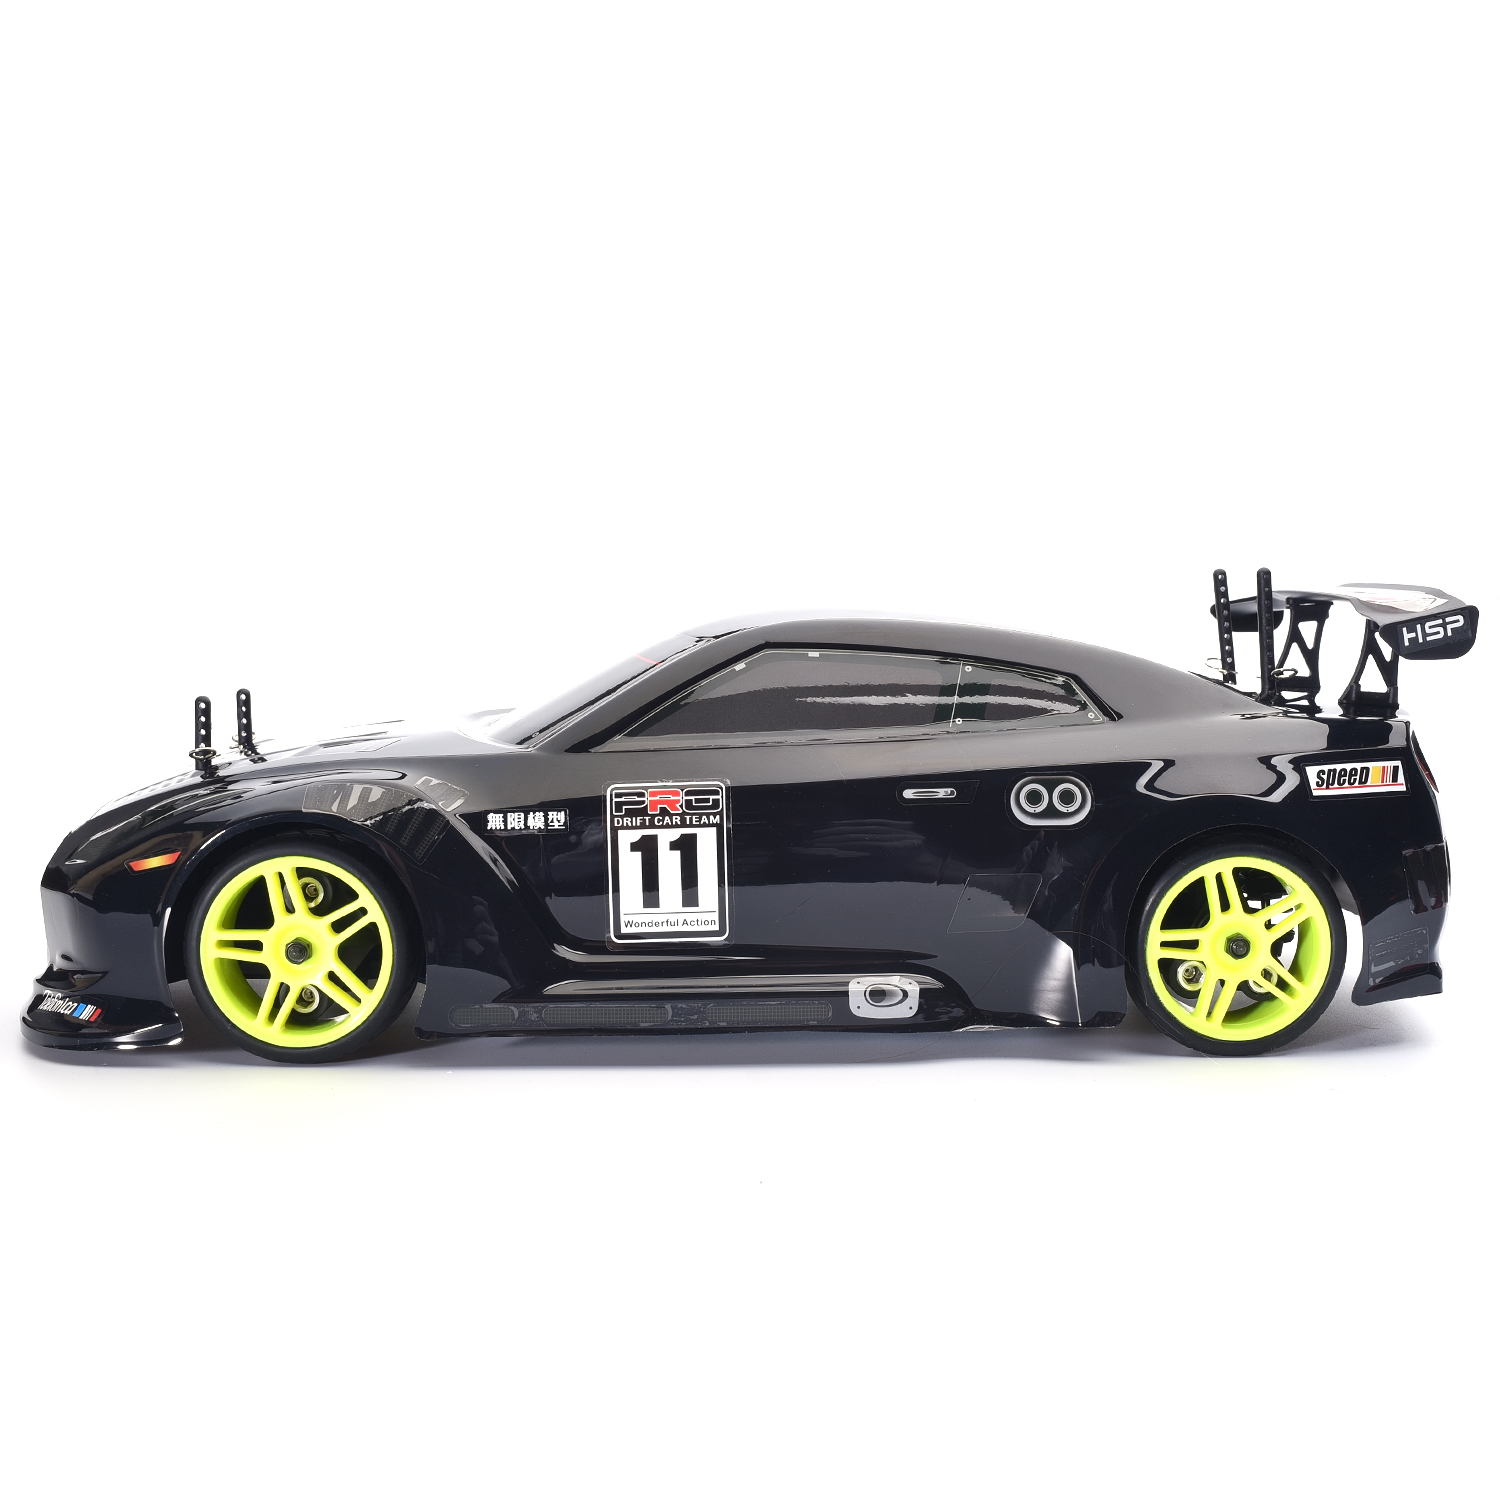 hsp drift car 1 10 scale 4wd nitro gas power on road touring racing rtr rc car ebay. Black Bedroom Furniture Sets. Home Design Ideas